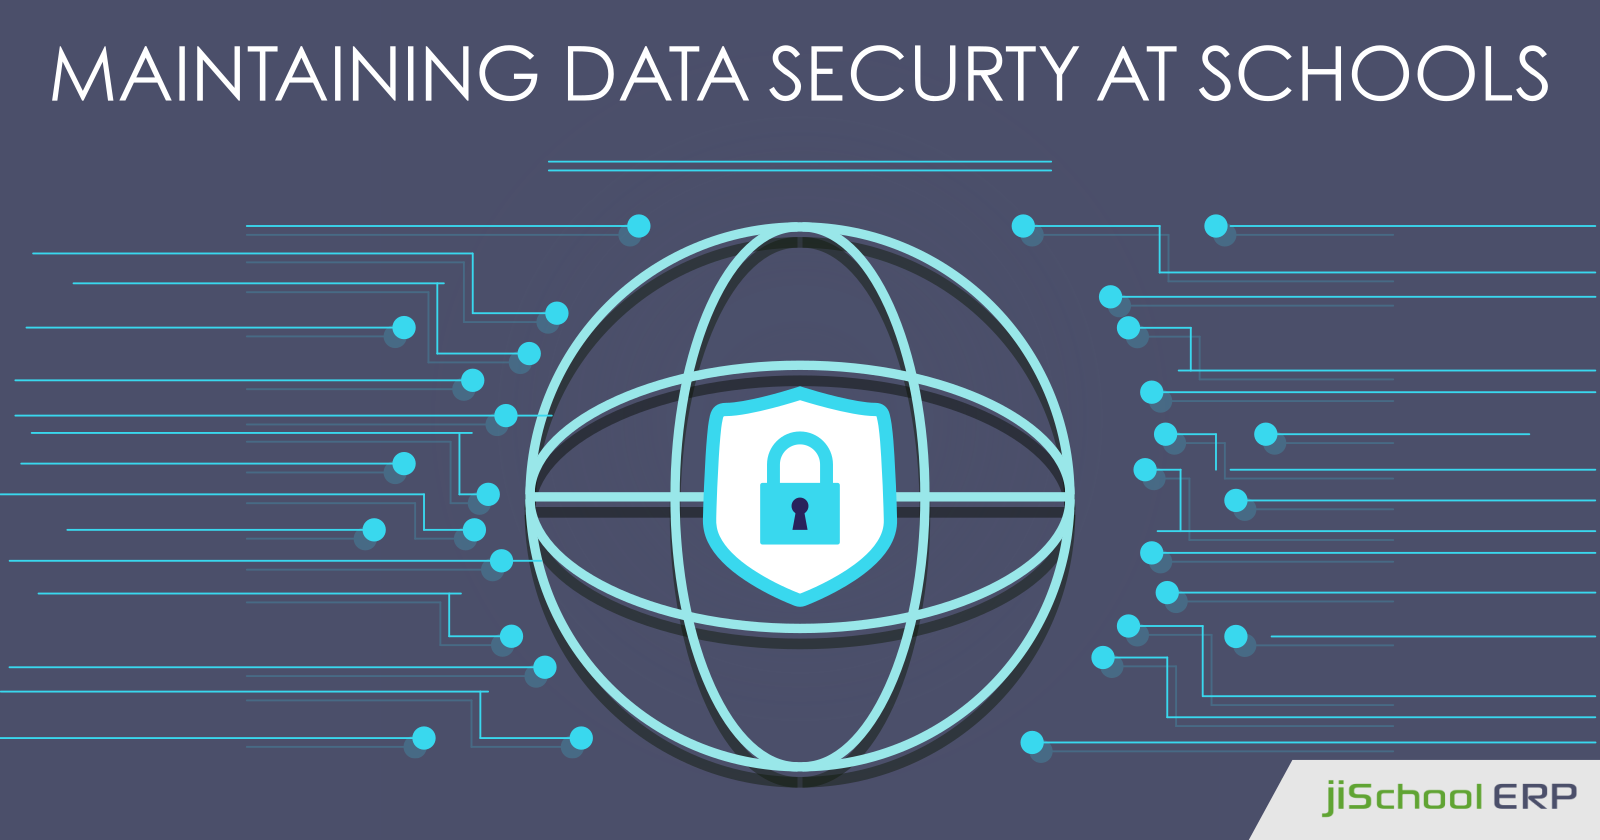 How jiSchoolERP Helps Schools in Maintaining Data Security?